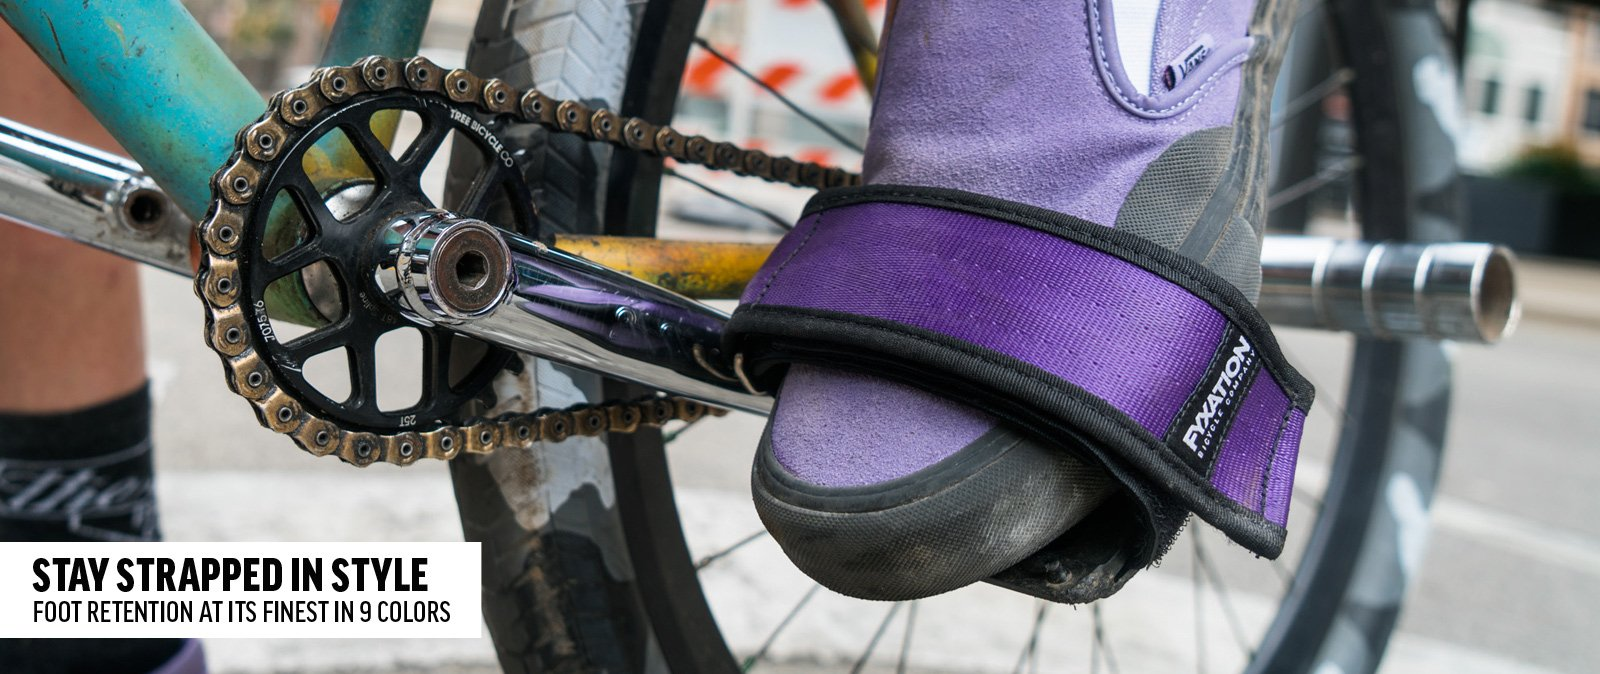 Bicycles and Parts for Urban Cyclists, Commuters and Fixed